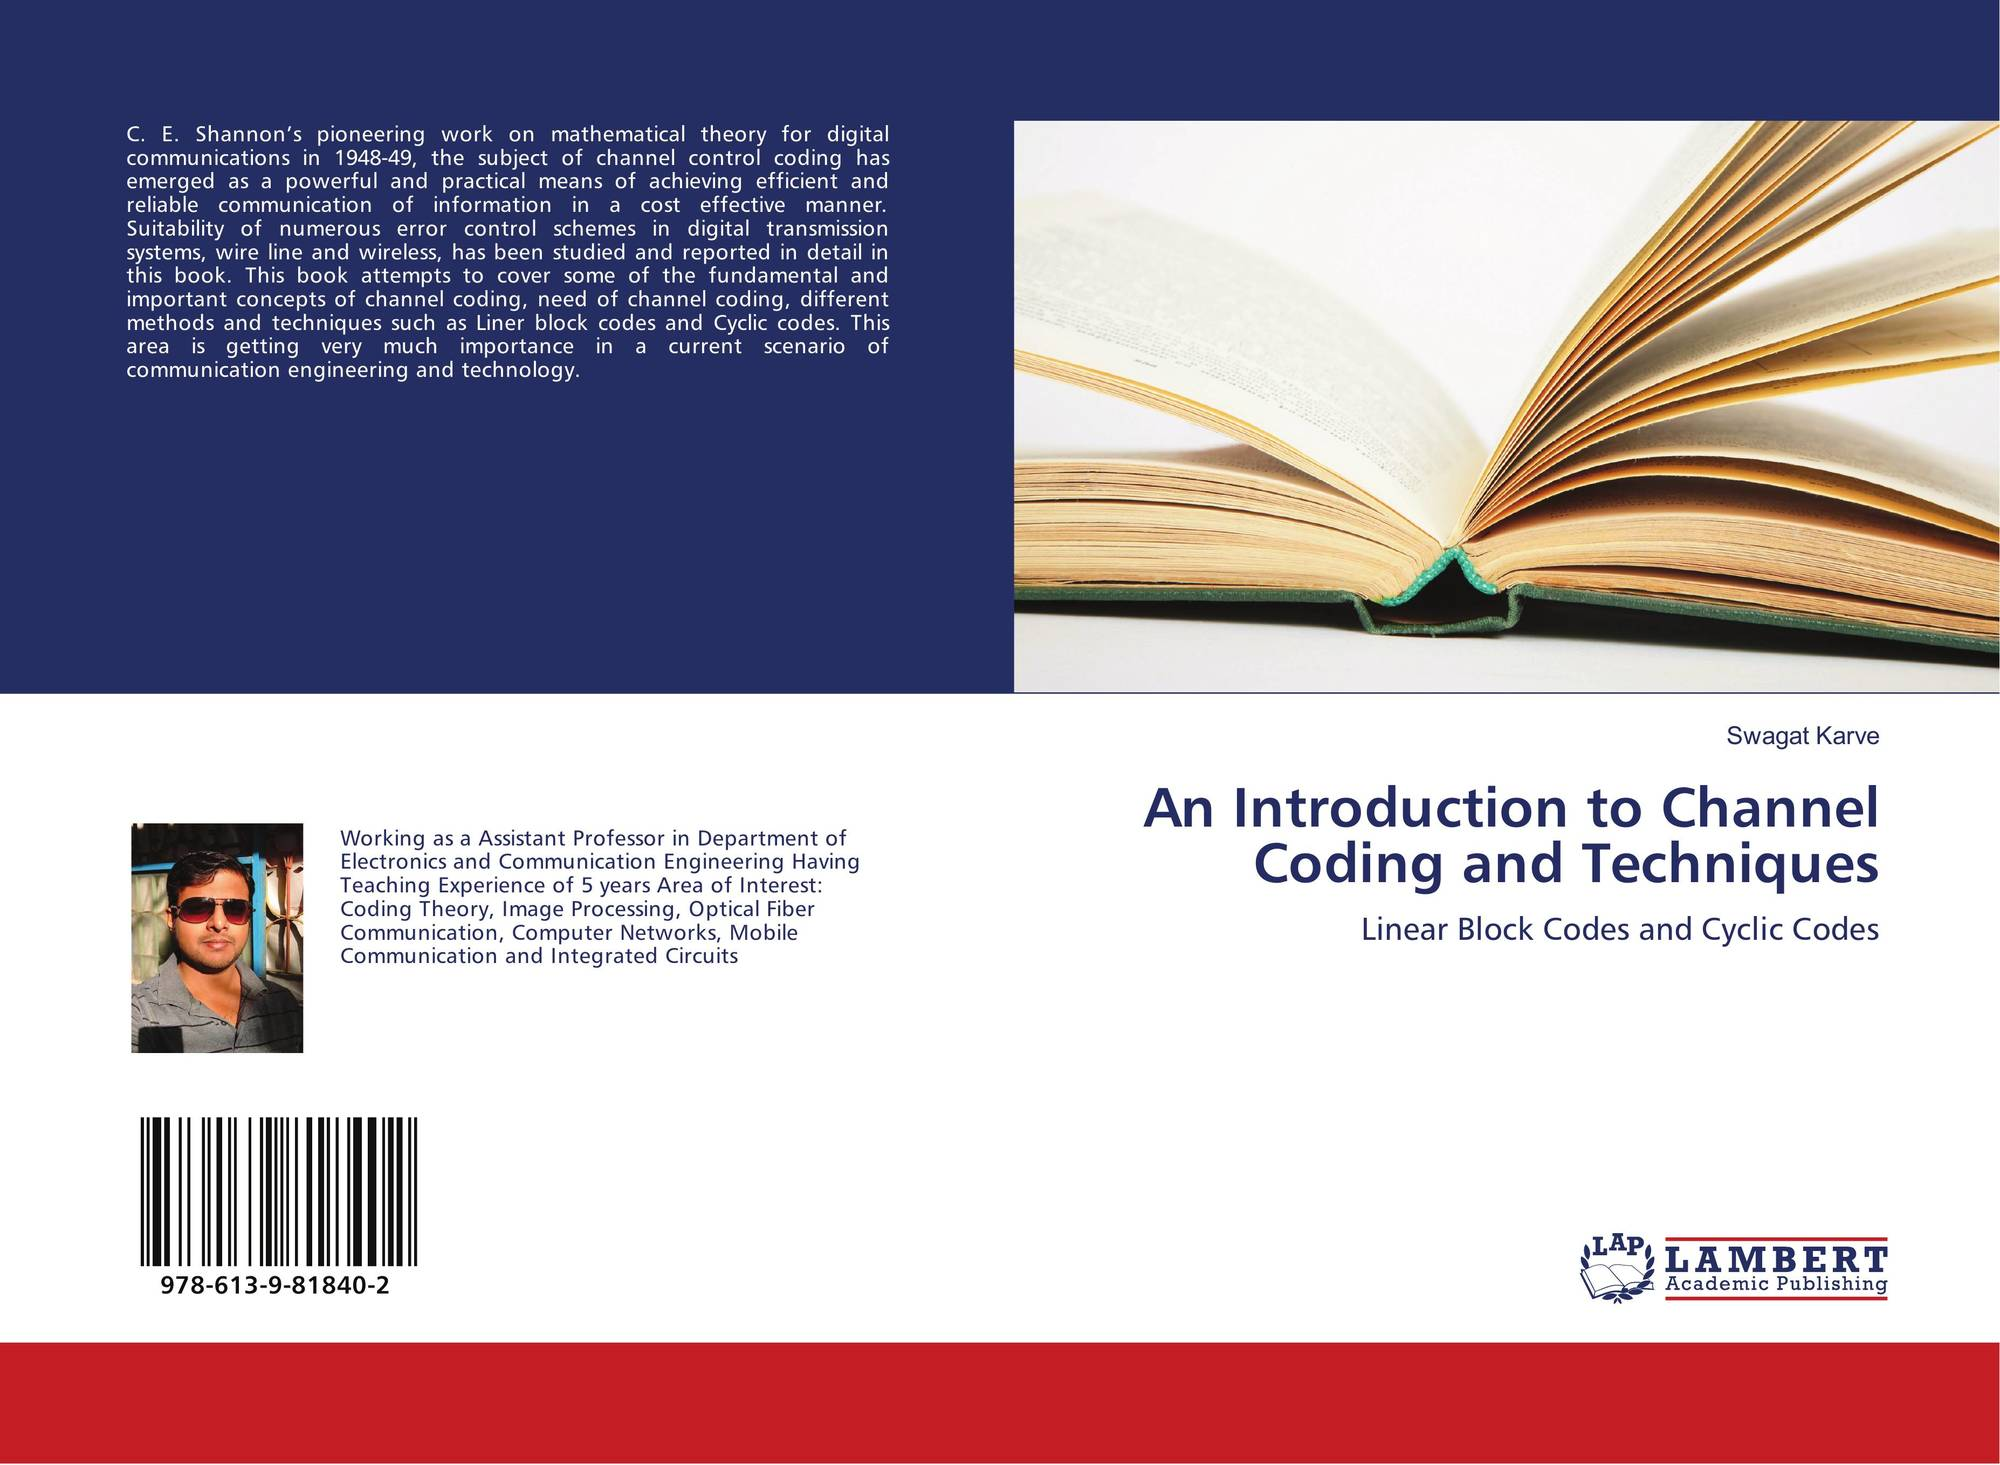 an introduction to the failure to develop Ccna 1 v60 introduction to networks: this course introduces the architecture, structure, functions, components, and models of the internet and other computer networks the principles and structure of ip addressing and the fundamentals of ethernet concepts, media, and operations are introduced to.